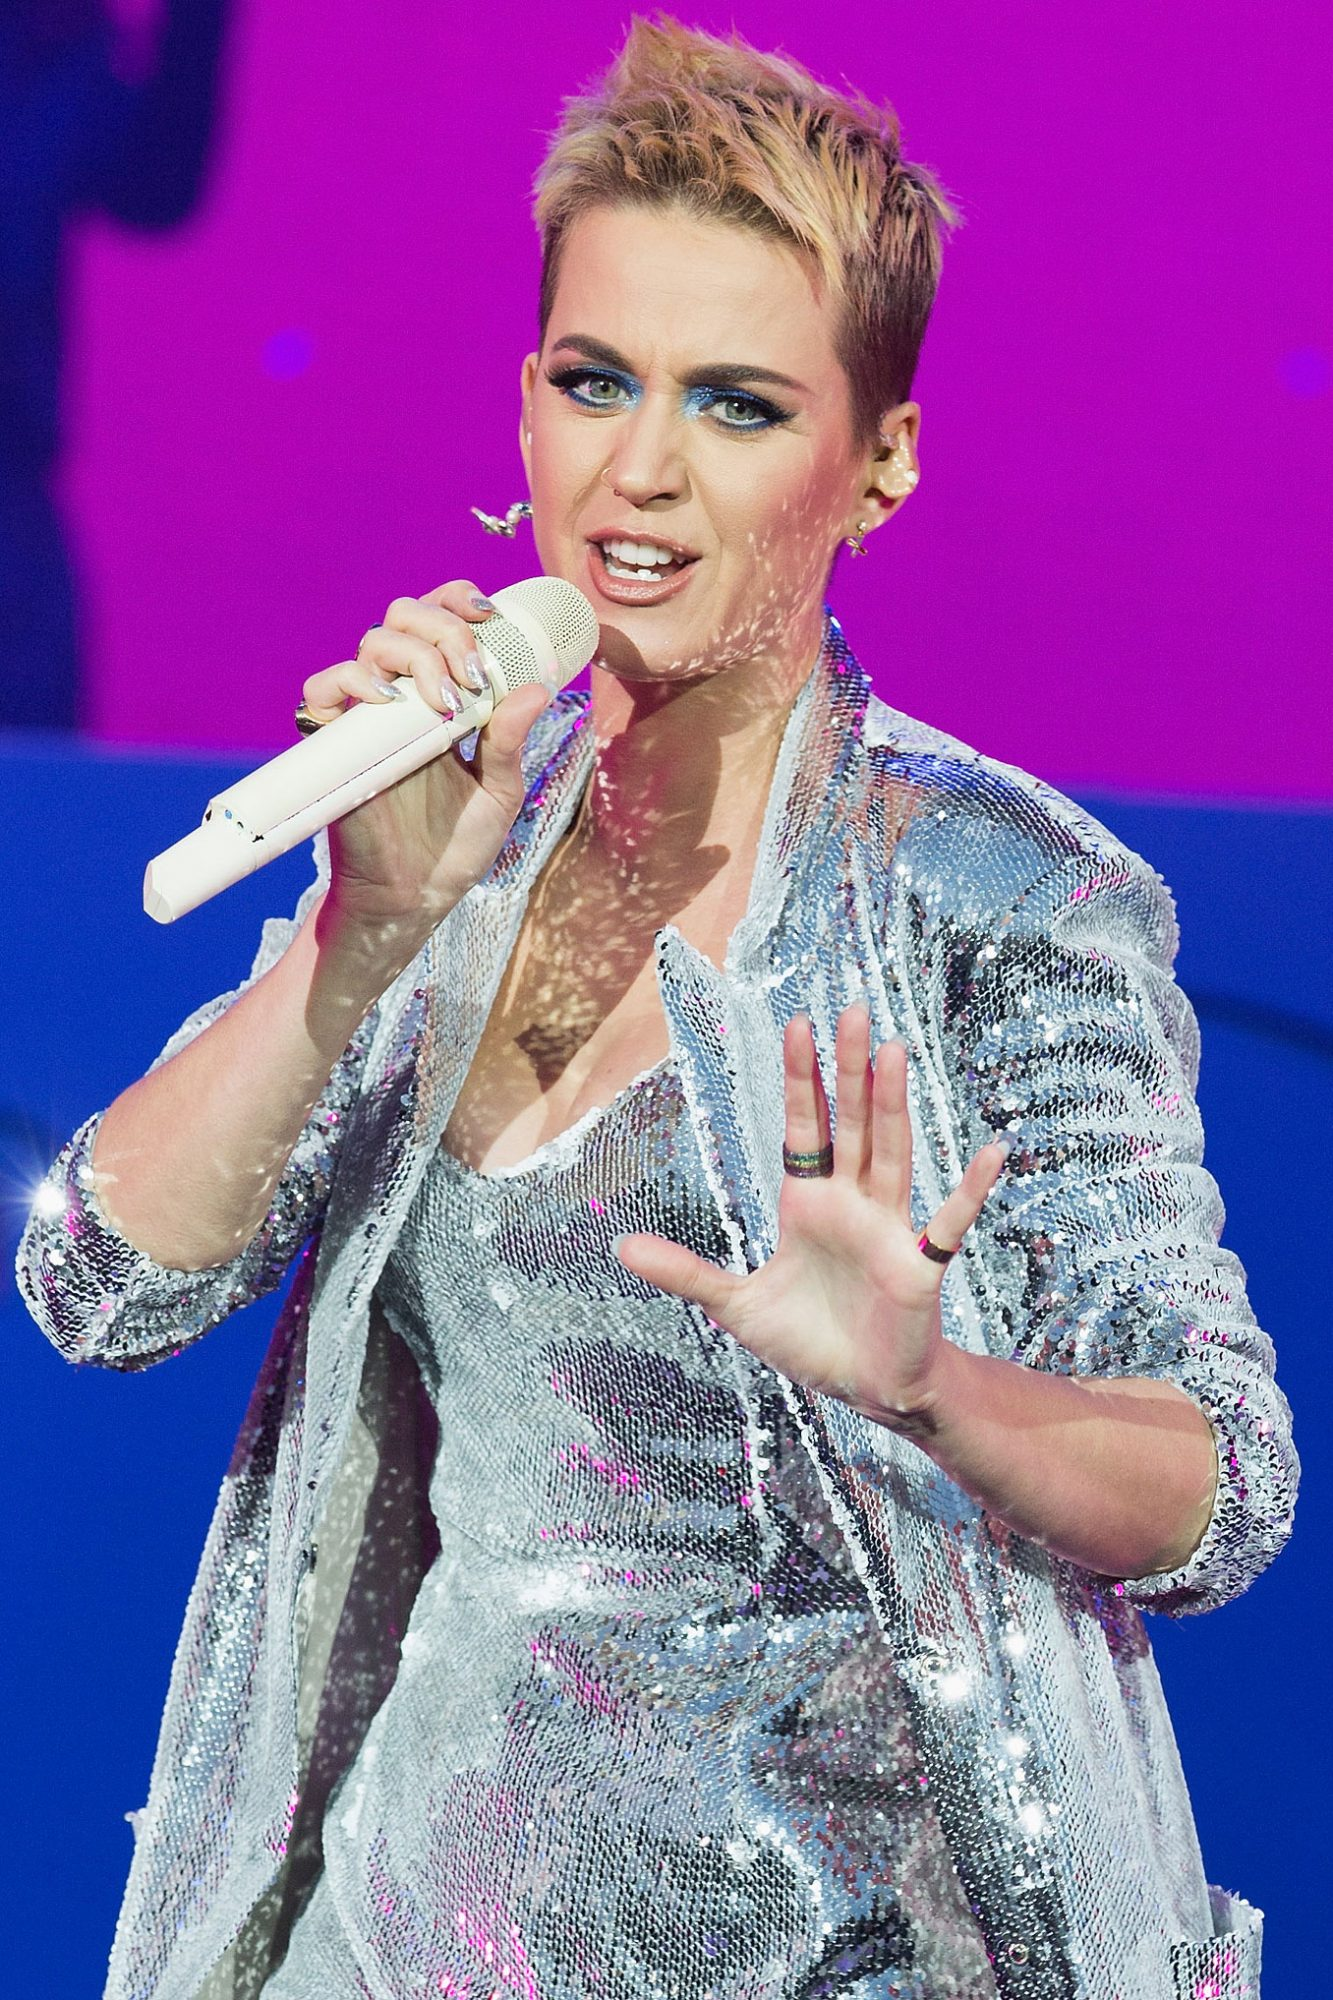 This Is What Katy Perry Looks Like with a Blue Pixie Cut